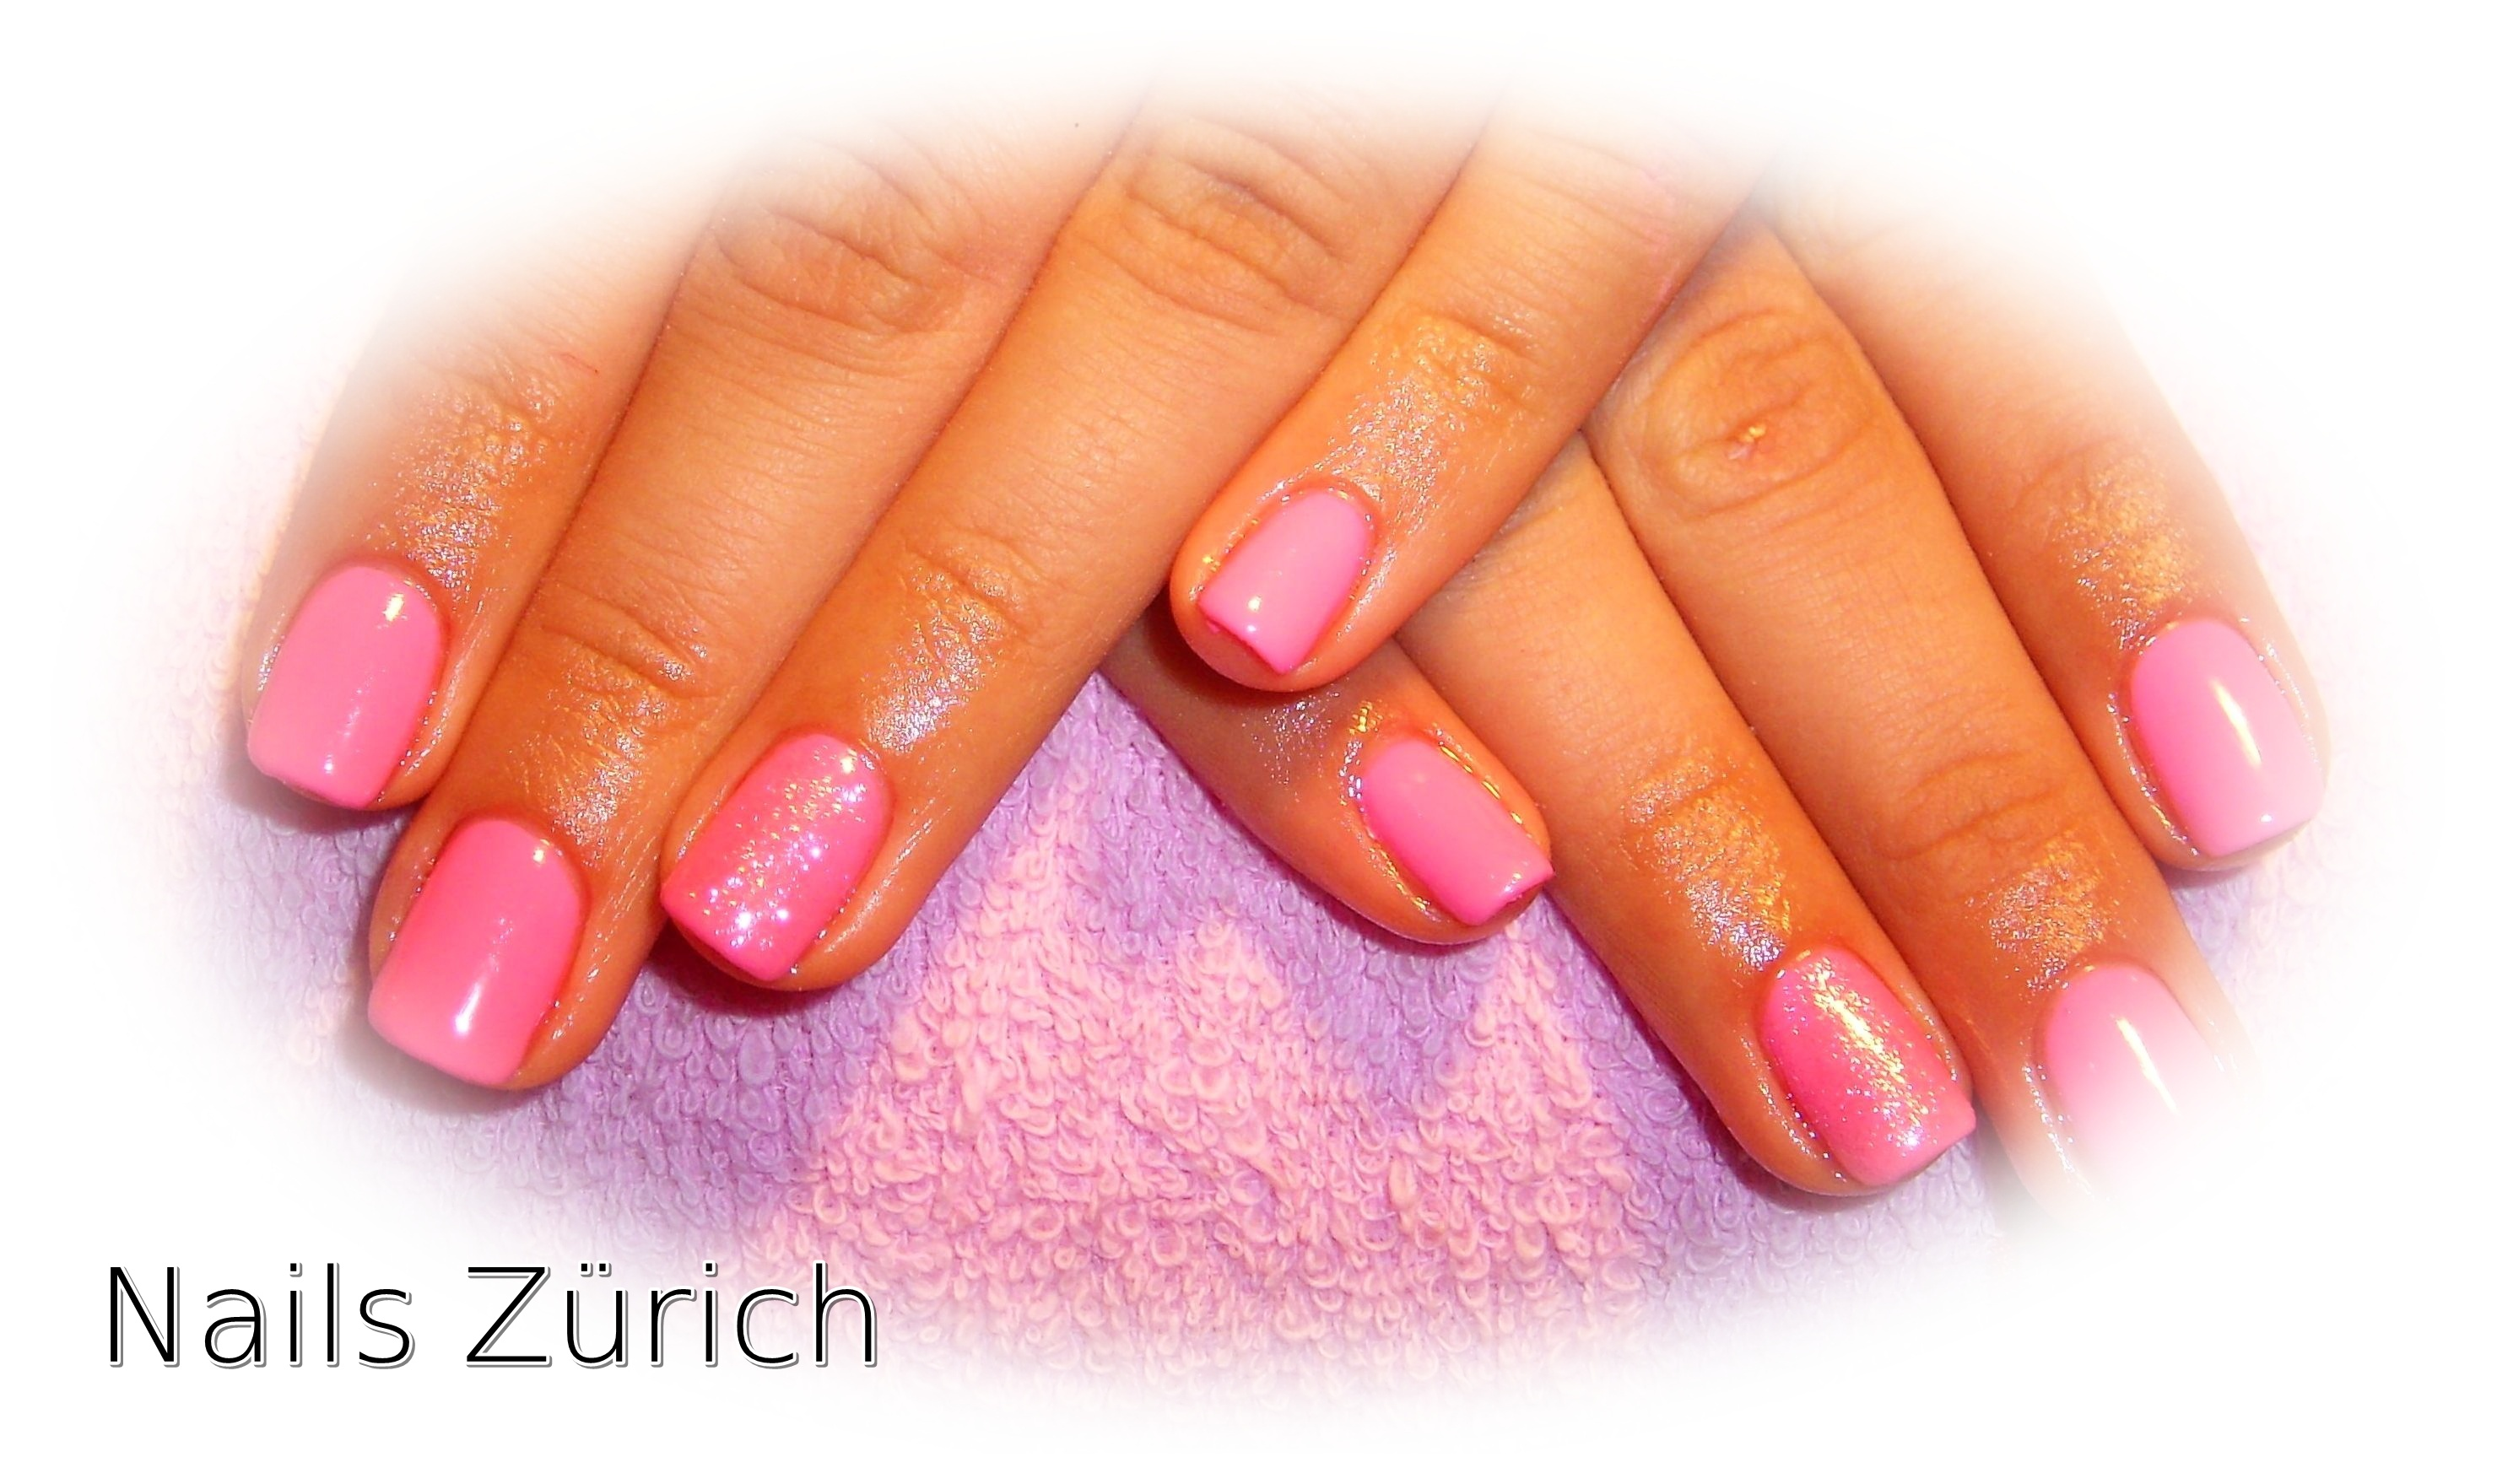 Kinga gellac nails Zürich